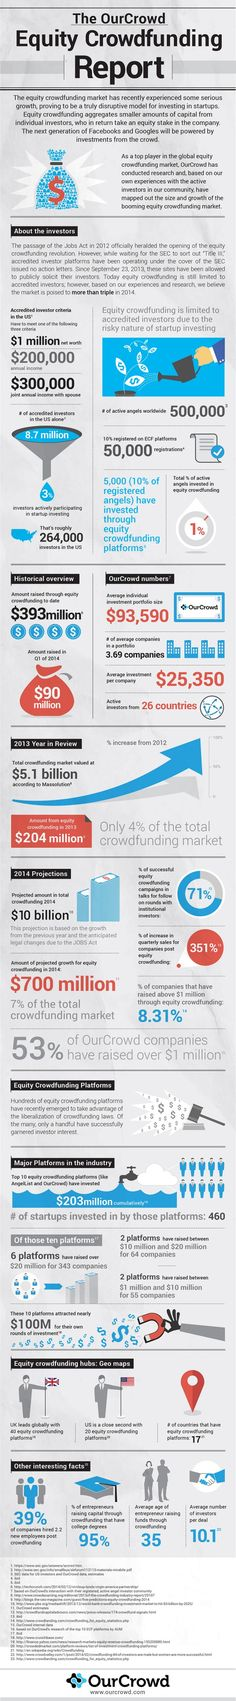 2014/Apr/01 - Equity Crowdfunding In 2014 & Beyond - How big is the crowdfunding market expected to be in 2014? How much of the crowdfunding market is made up of equity-based funding? How many jobs does crowdfunding create?.... -- #socialmedia #infographic #2014